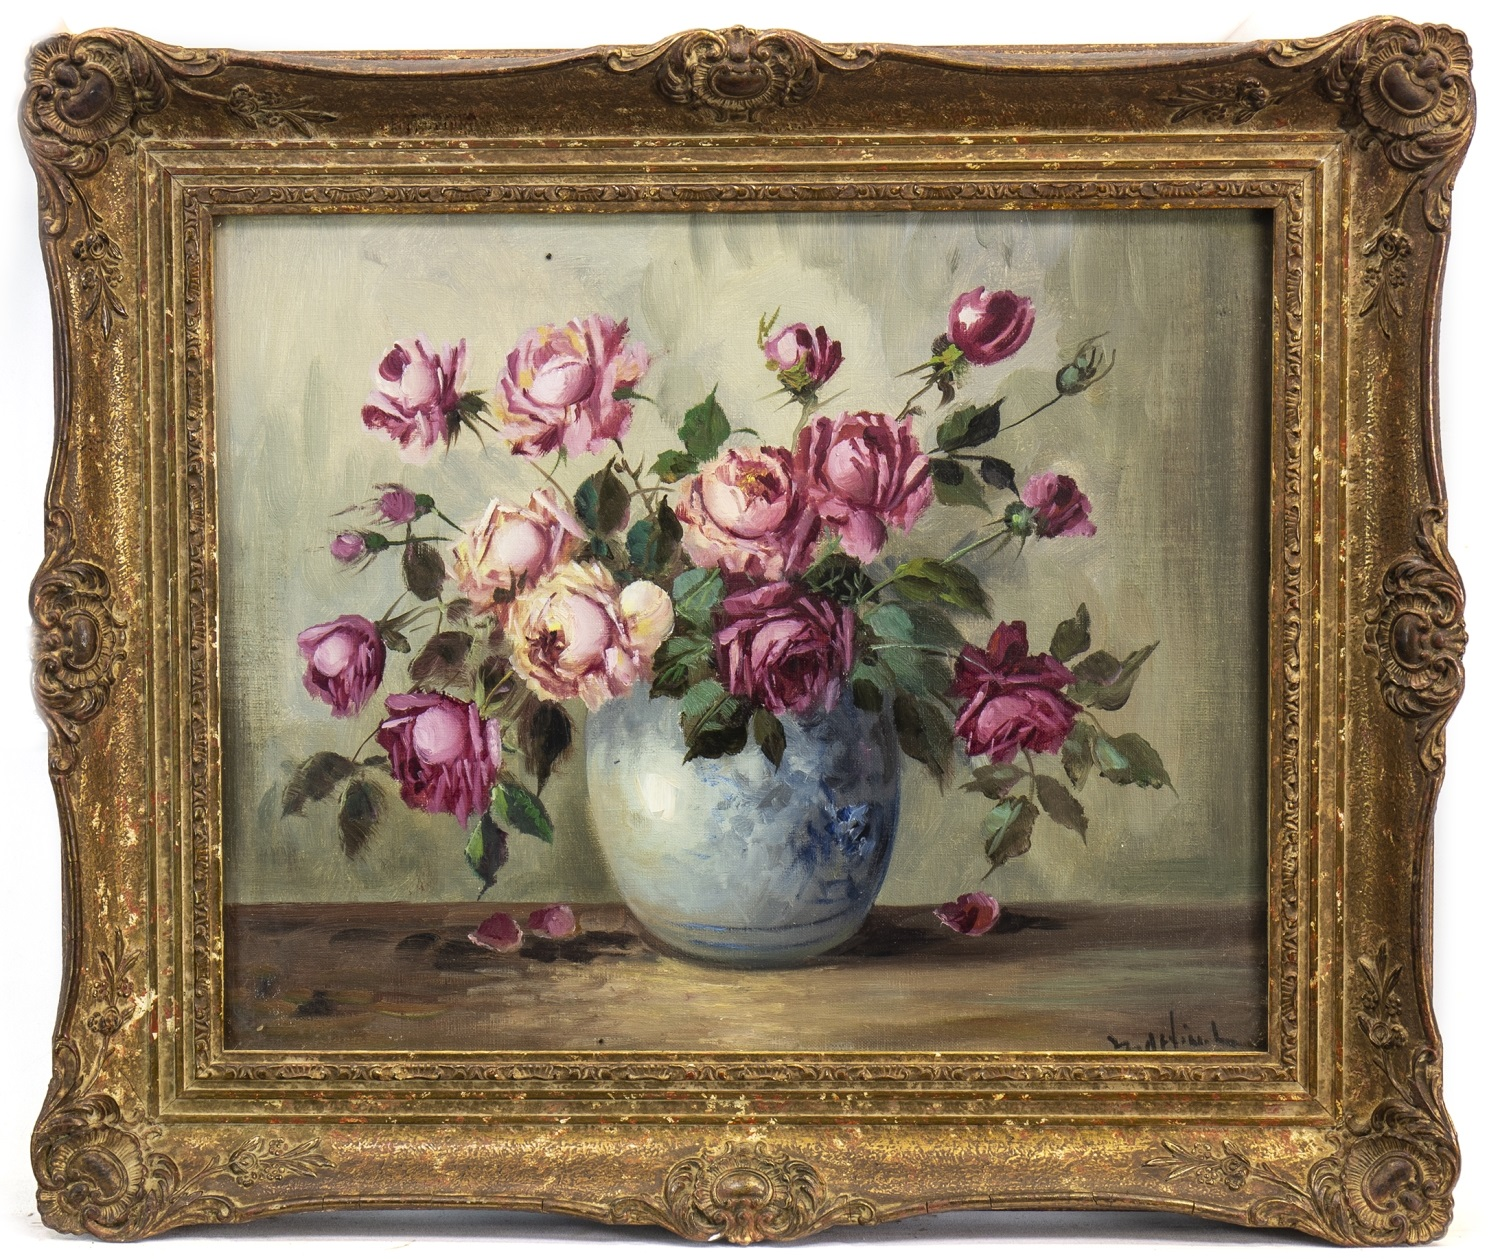 Lot 641 - FLORAL STILL LIFE, IN THE STYLE OF ALFRED LEHMANN